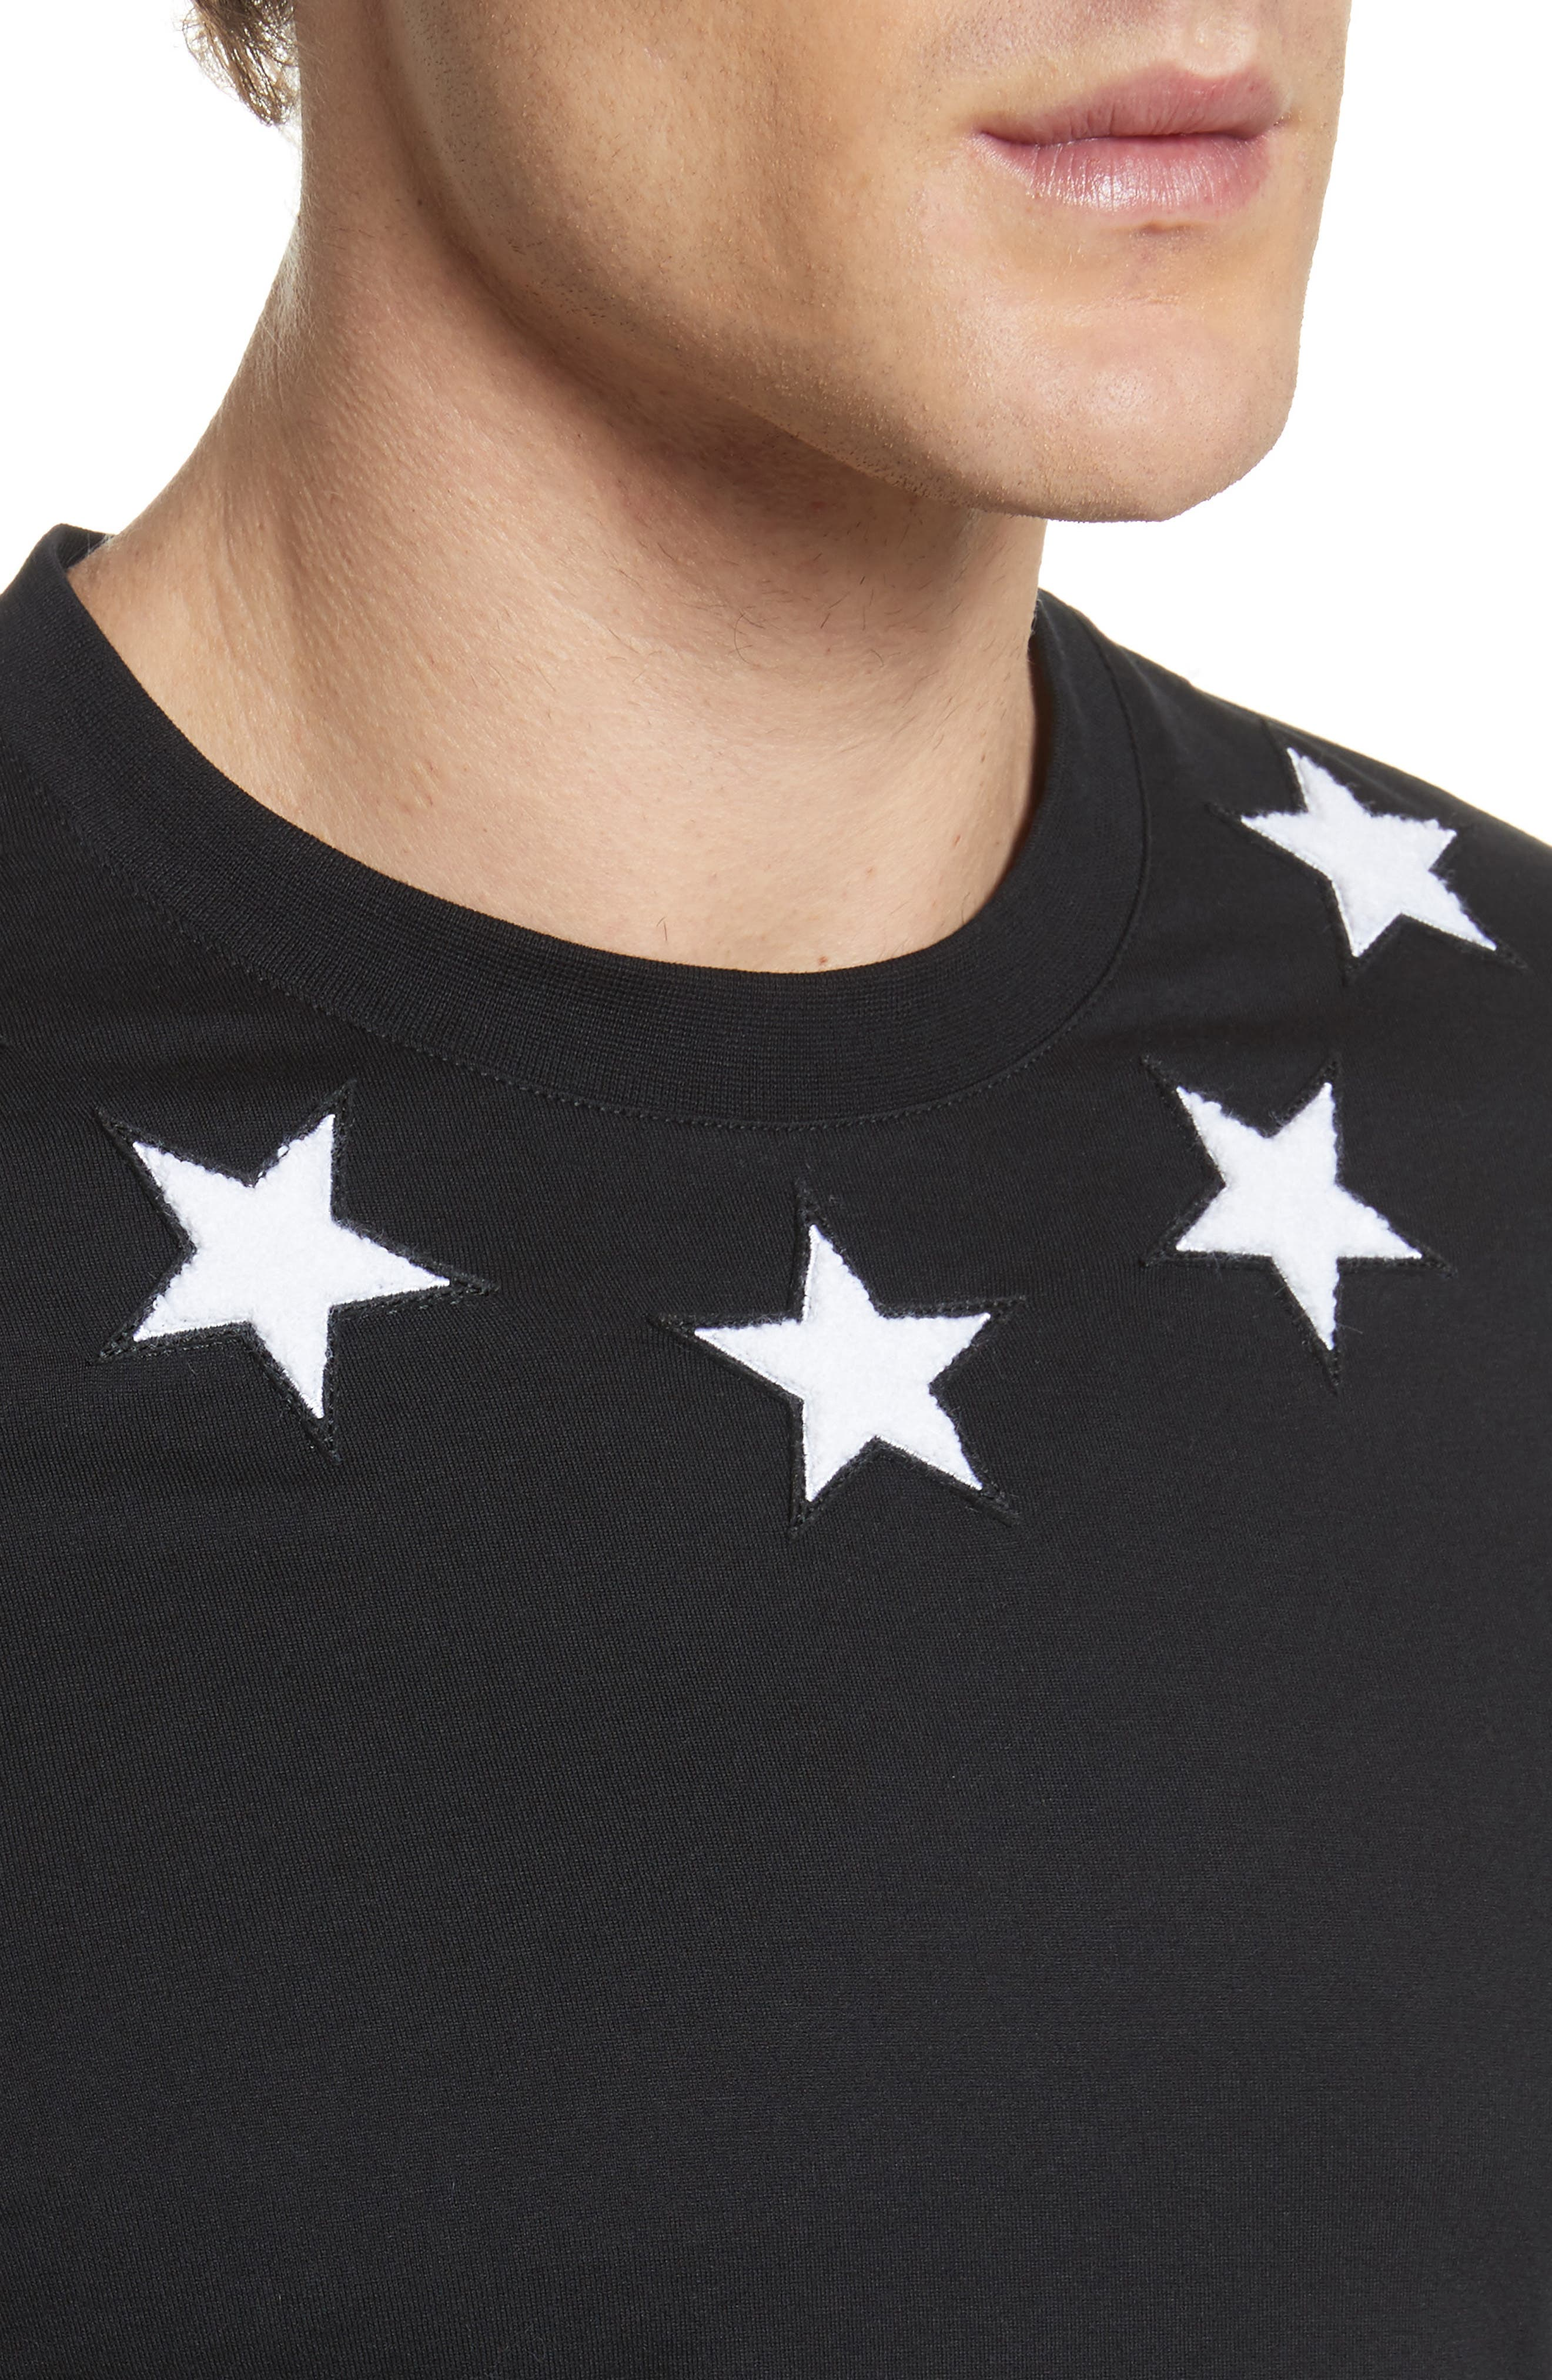 Star Appliqué T-Shirt,                             Alternate thumbnail 4, color,                             001